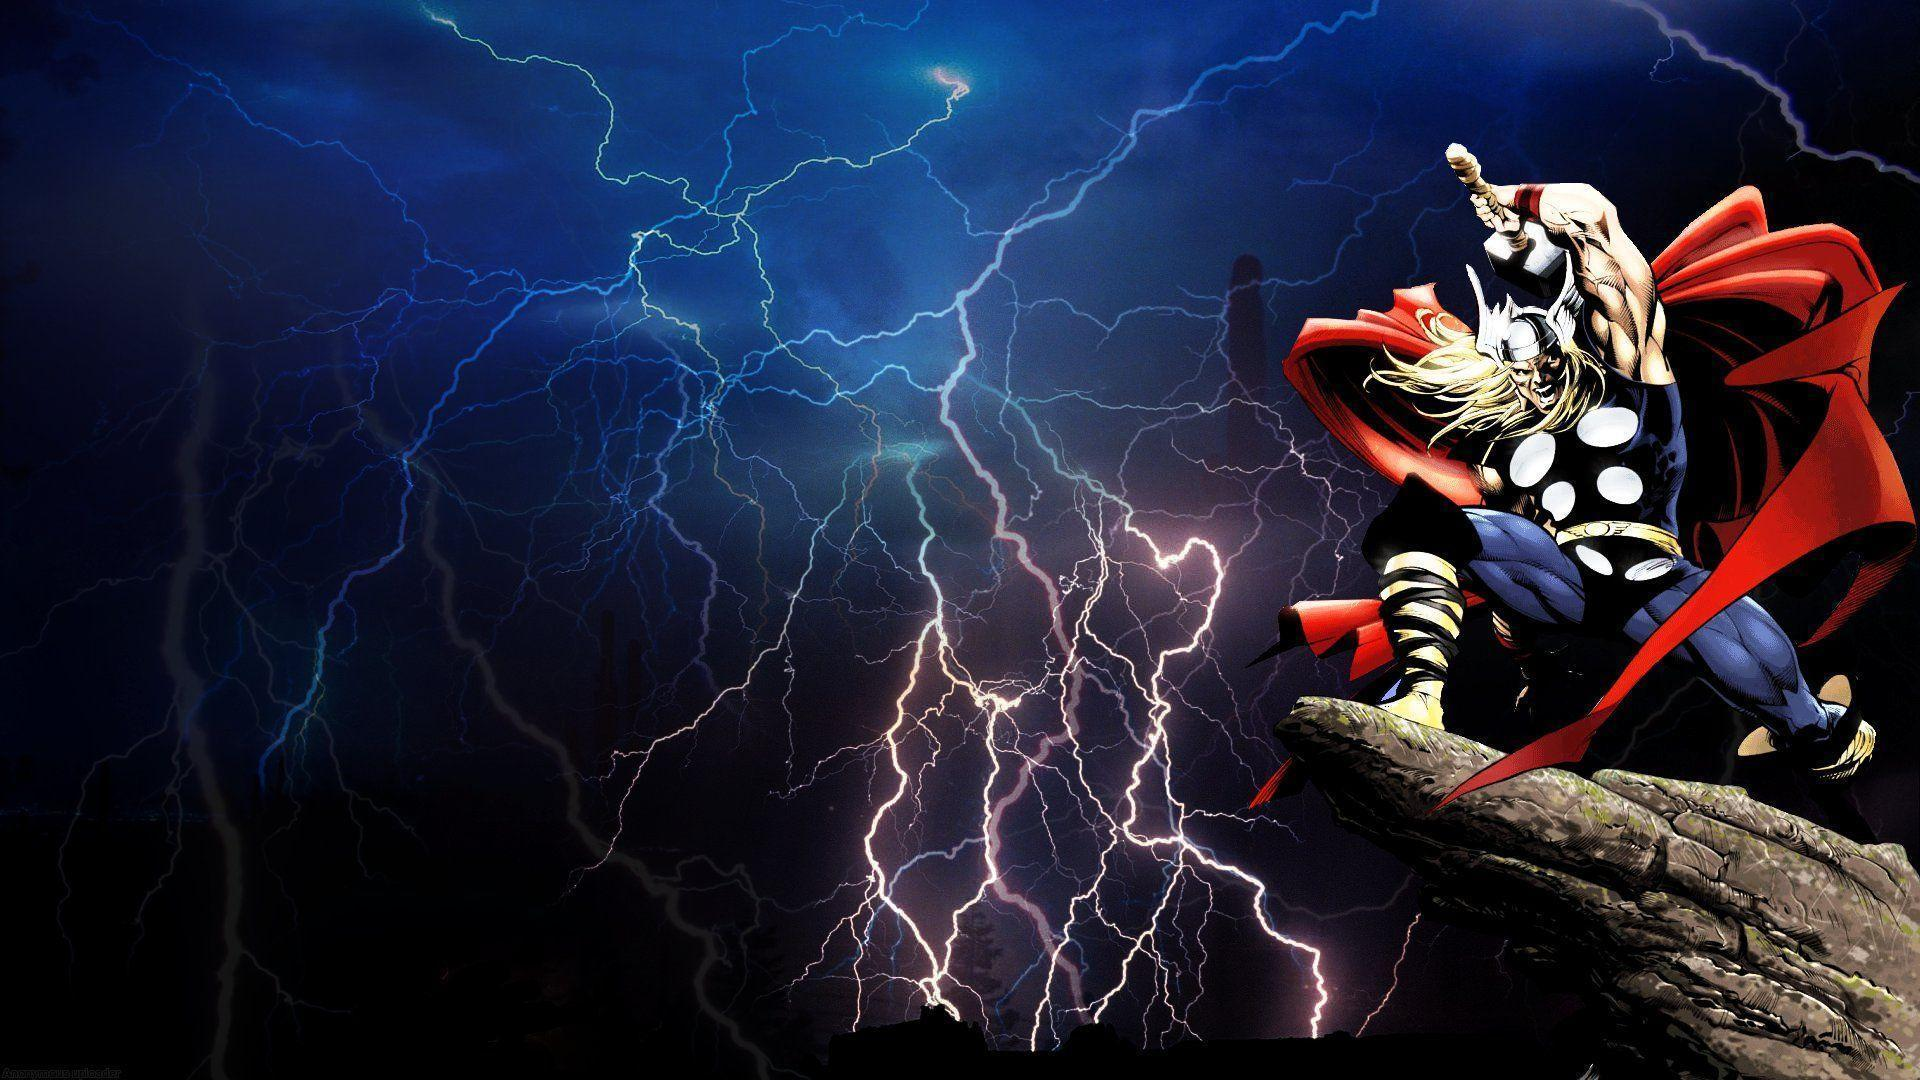 thor comics wallpaper comic - photo #39